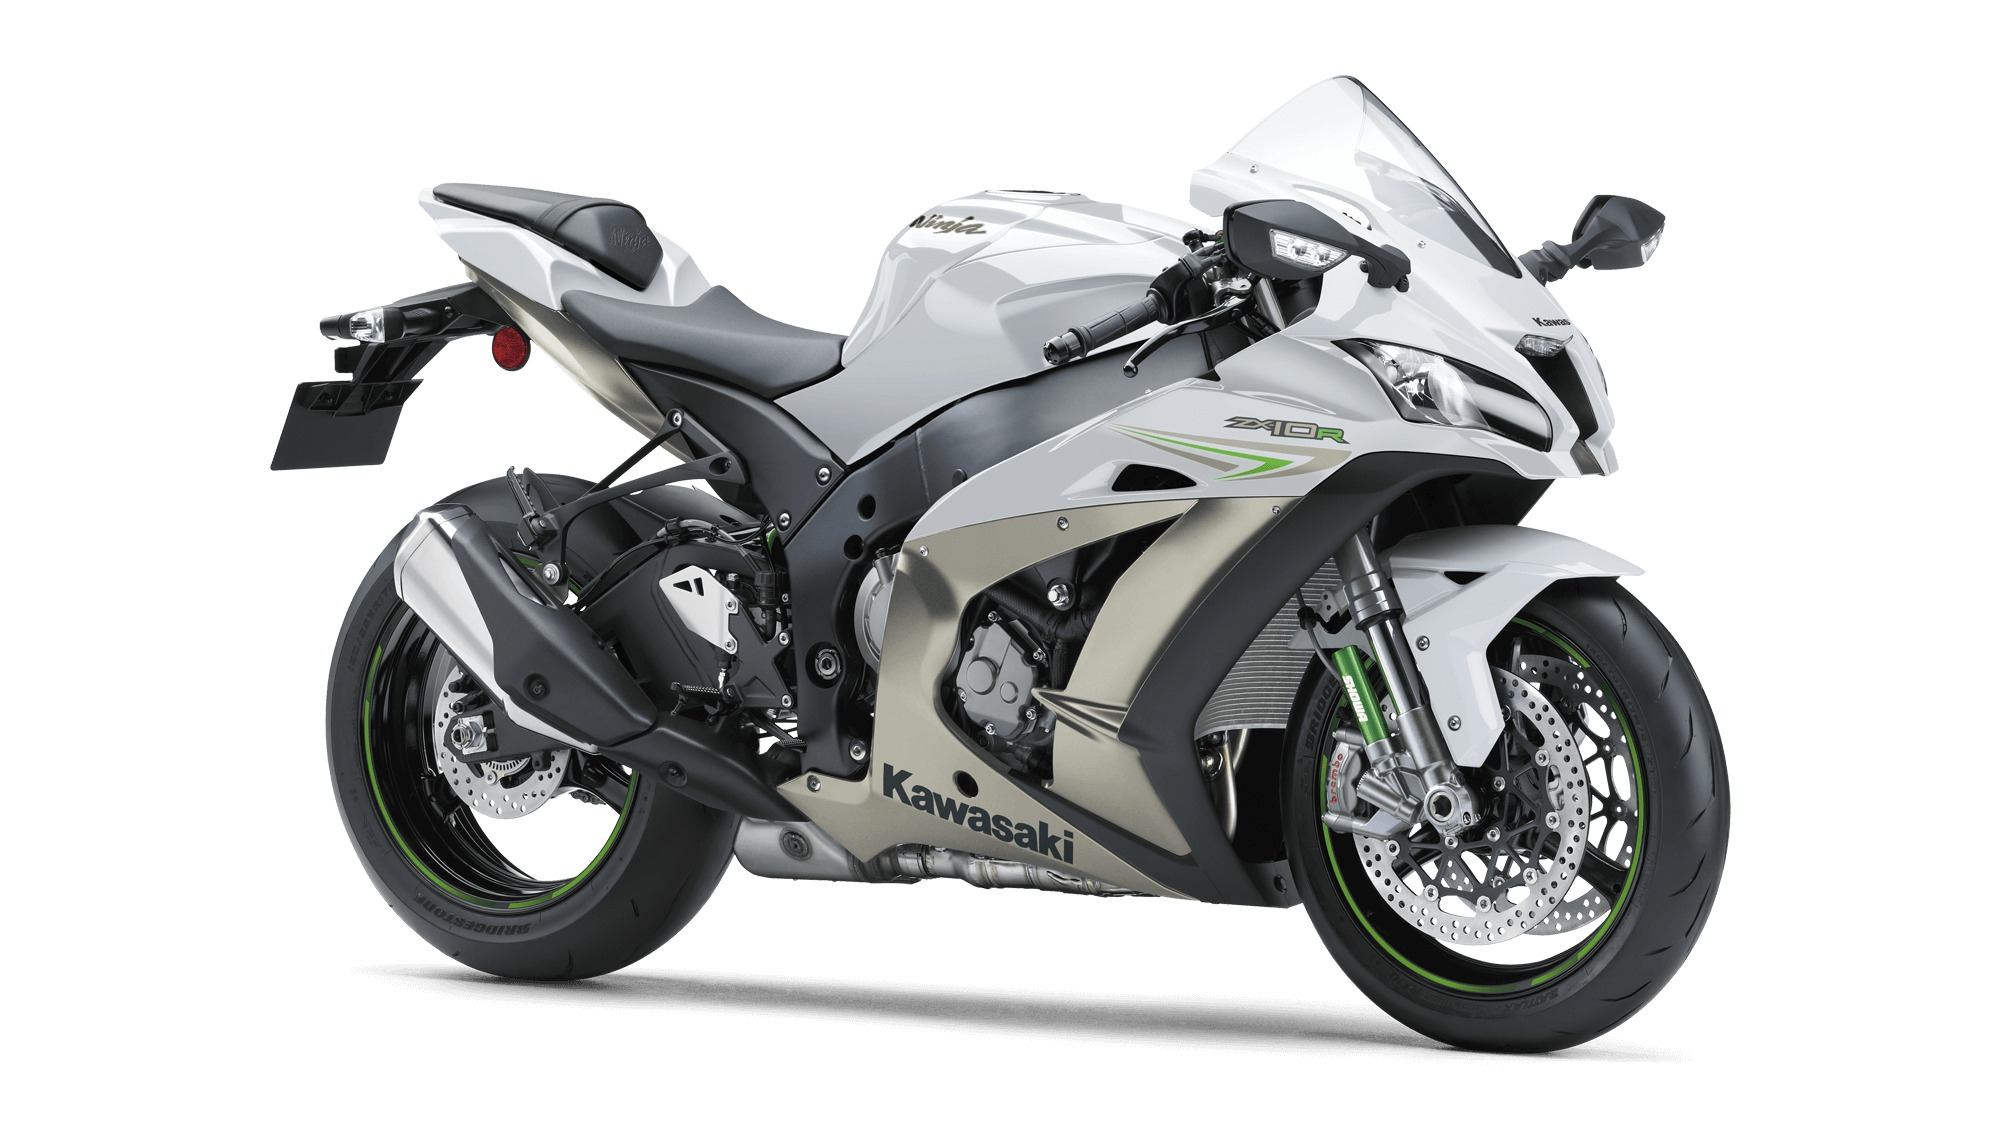 Kawasaki NINJA ZX-10R For Sale: 413 Motorcycles - CycleTrader.com